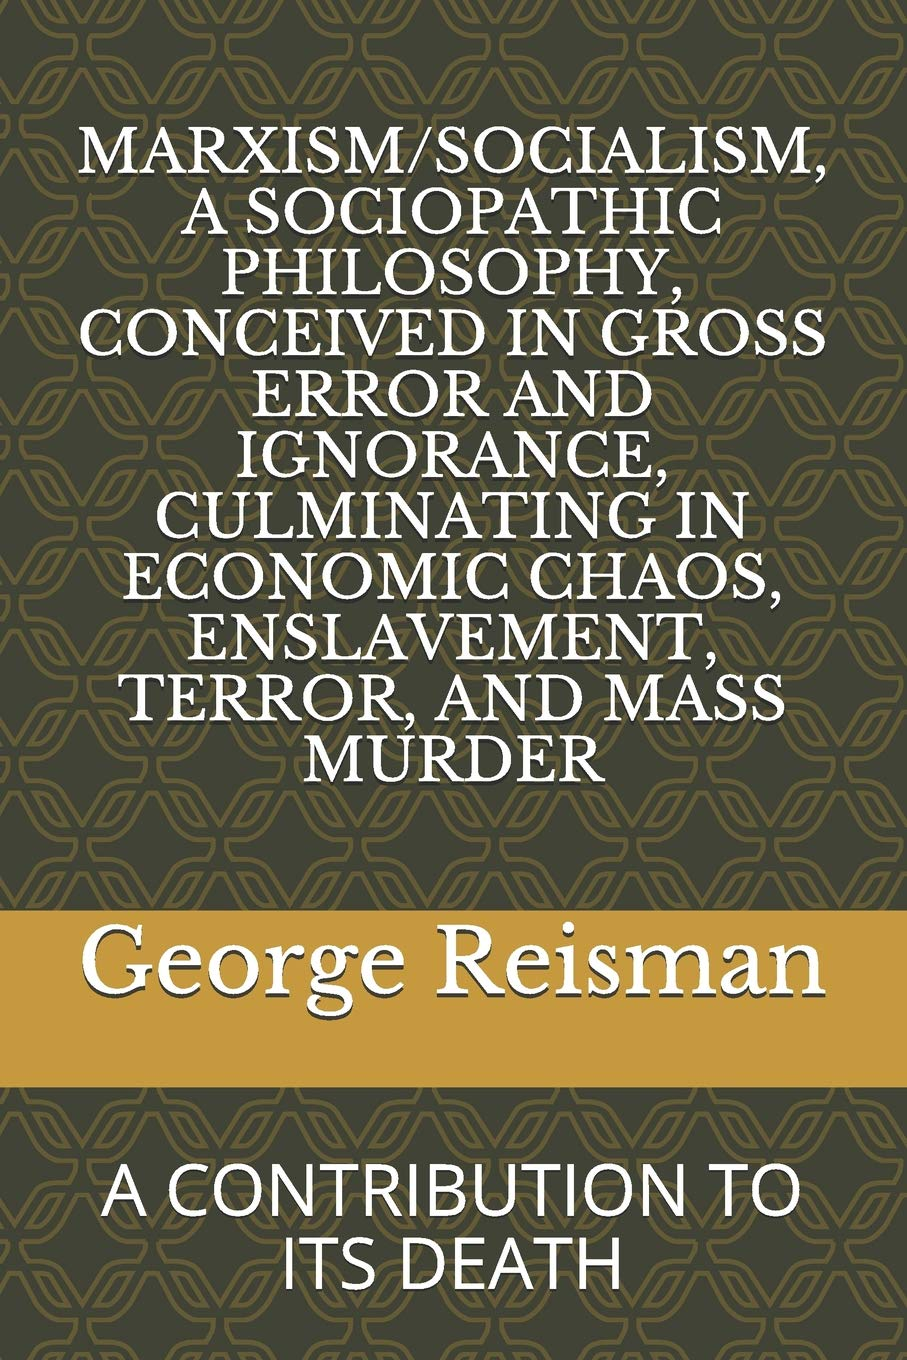 MARXISM/SOCIALISM, A SOCIOPATHIC PHILOSOPHY CONCEIVED IN GROSS ERROR AND IGNORANCE, CULMINATING IN ECONOMIC CHAOS, ENSLAVEMENT, TERROR, AND MASS MURDER: A CONTRIBUTION TO ITS DEATH: Amazon.es: Reisman, George: Libros en idiomas extranjeros